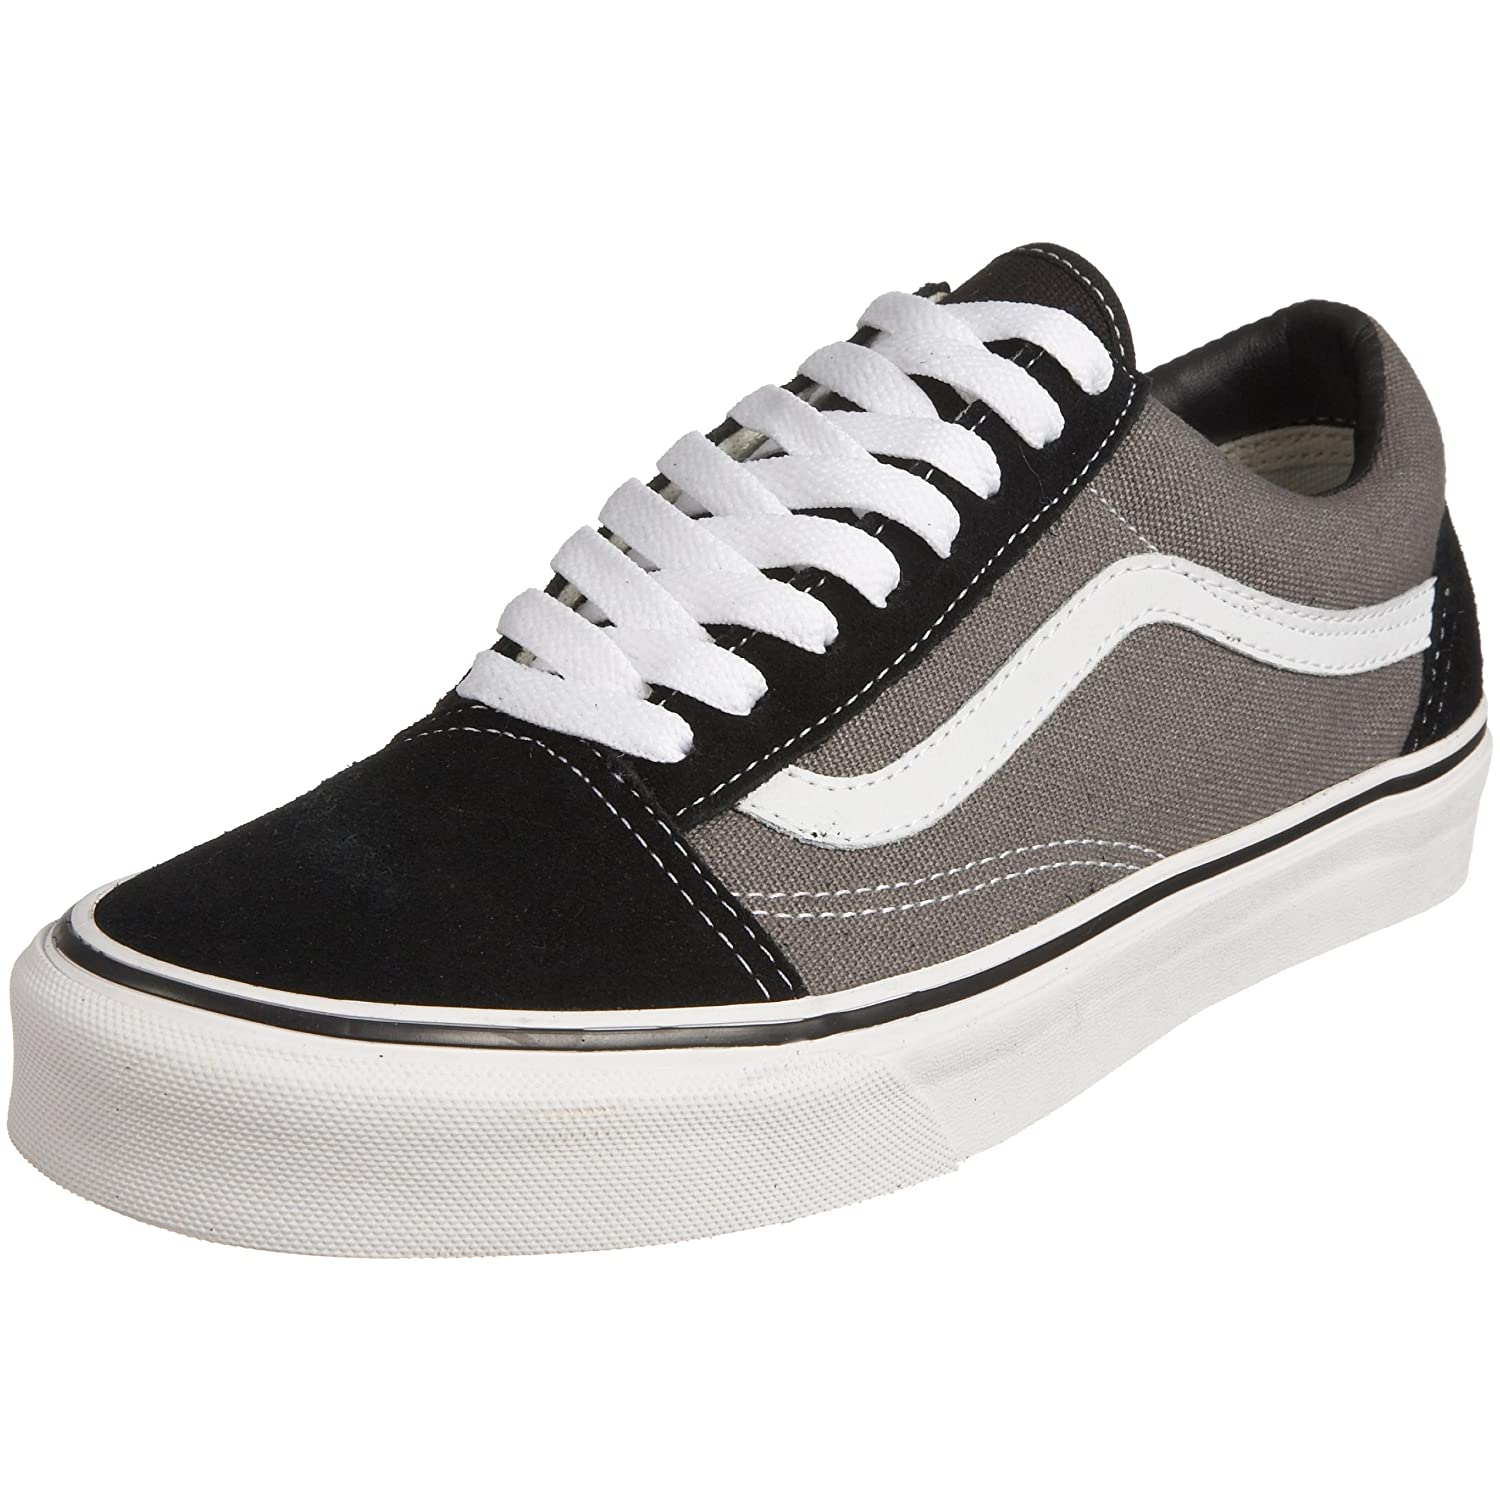 old skool vans black and grey